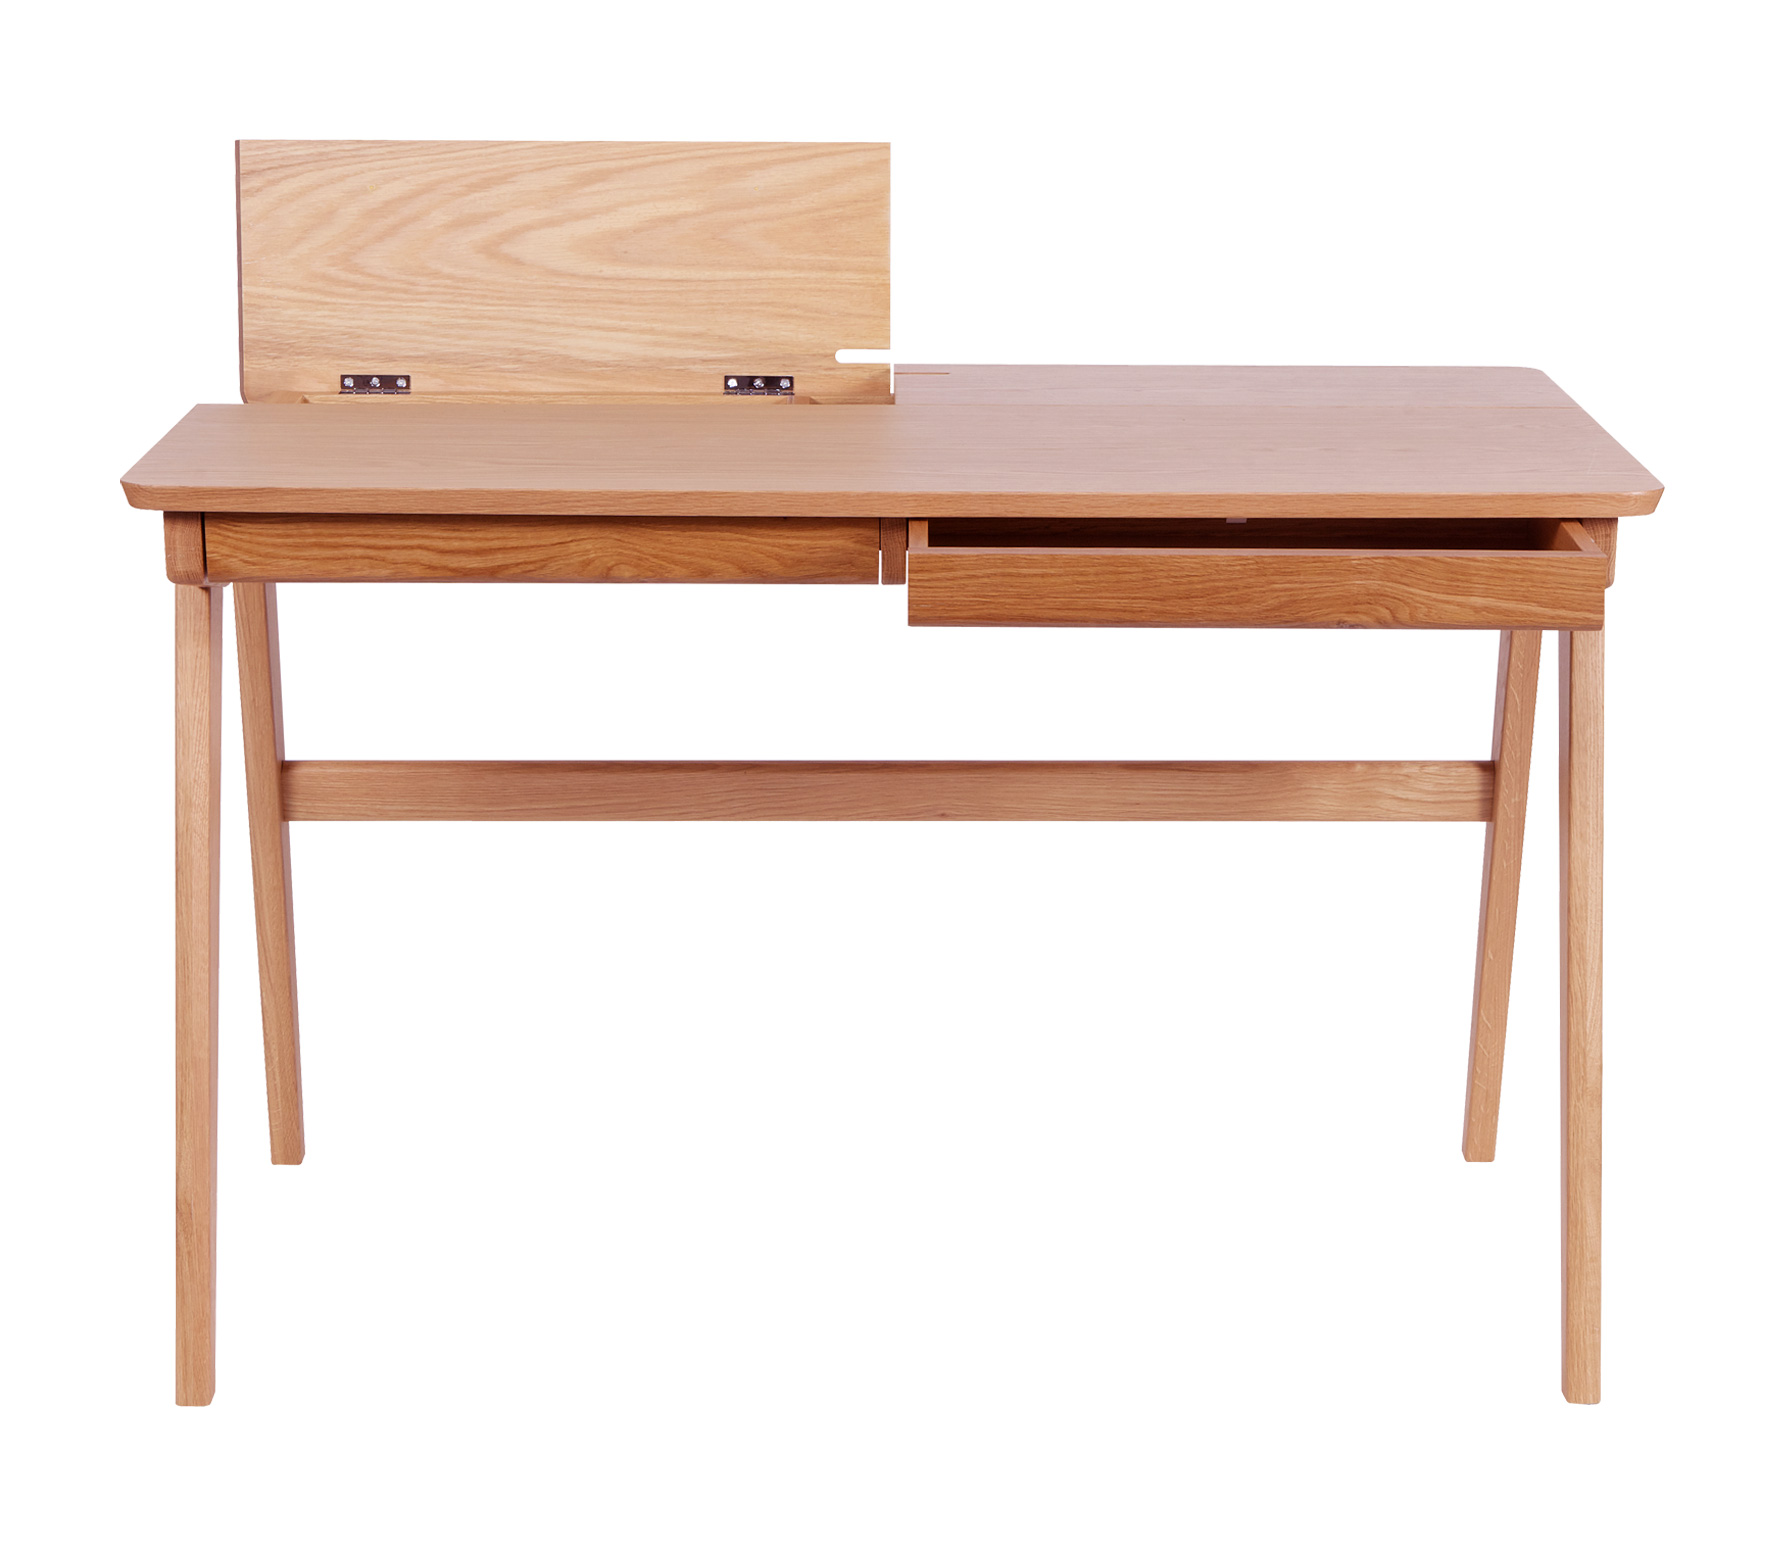 BePureHome Oxford bureau essen-fineer Essen fineer